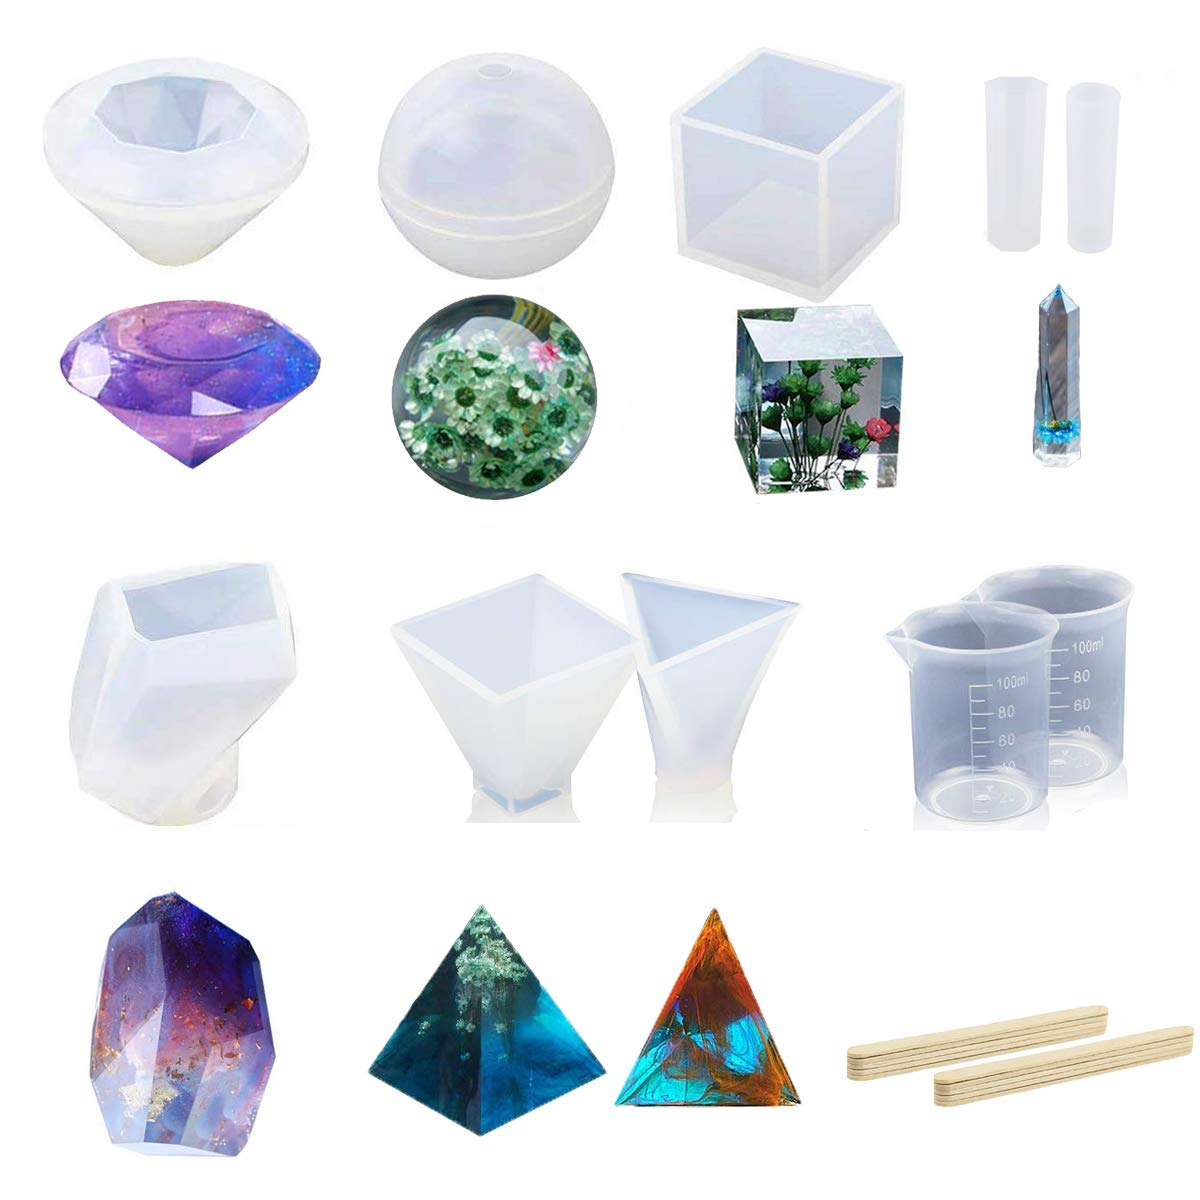 Yoodelife Resin Casting Molds Large10 Pack Clear Silicone Epoxy Resin Molds for Jewelry Making, with Measurement Cups& Wood Sticks, Including Sphere/Cube/Diamond/Pyramid/Triangular Pyramid/Stone Shape